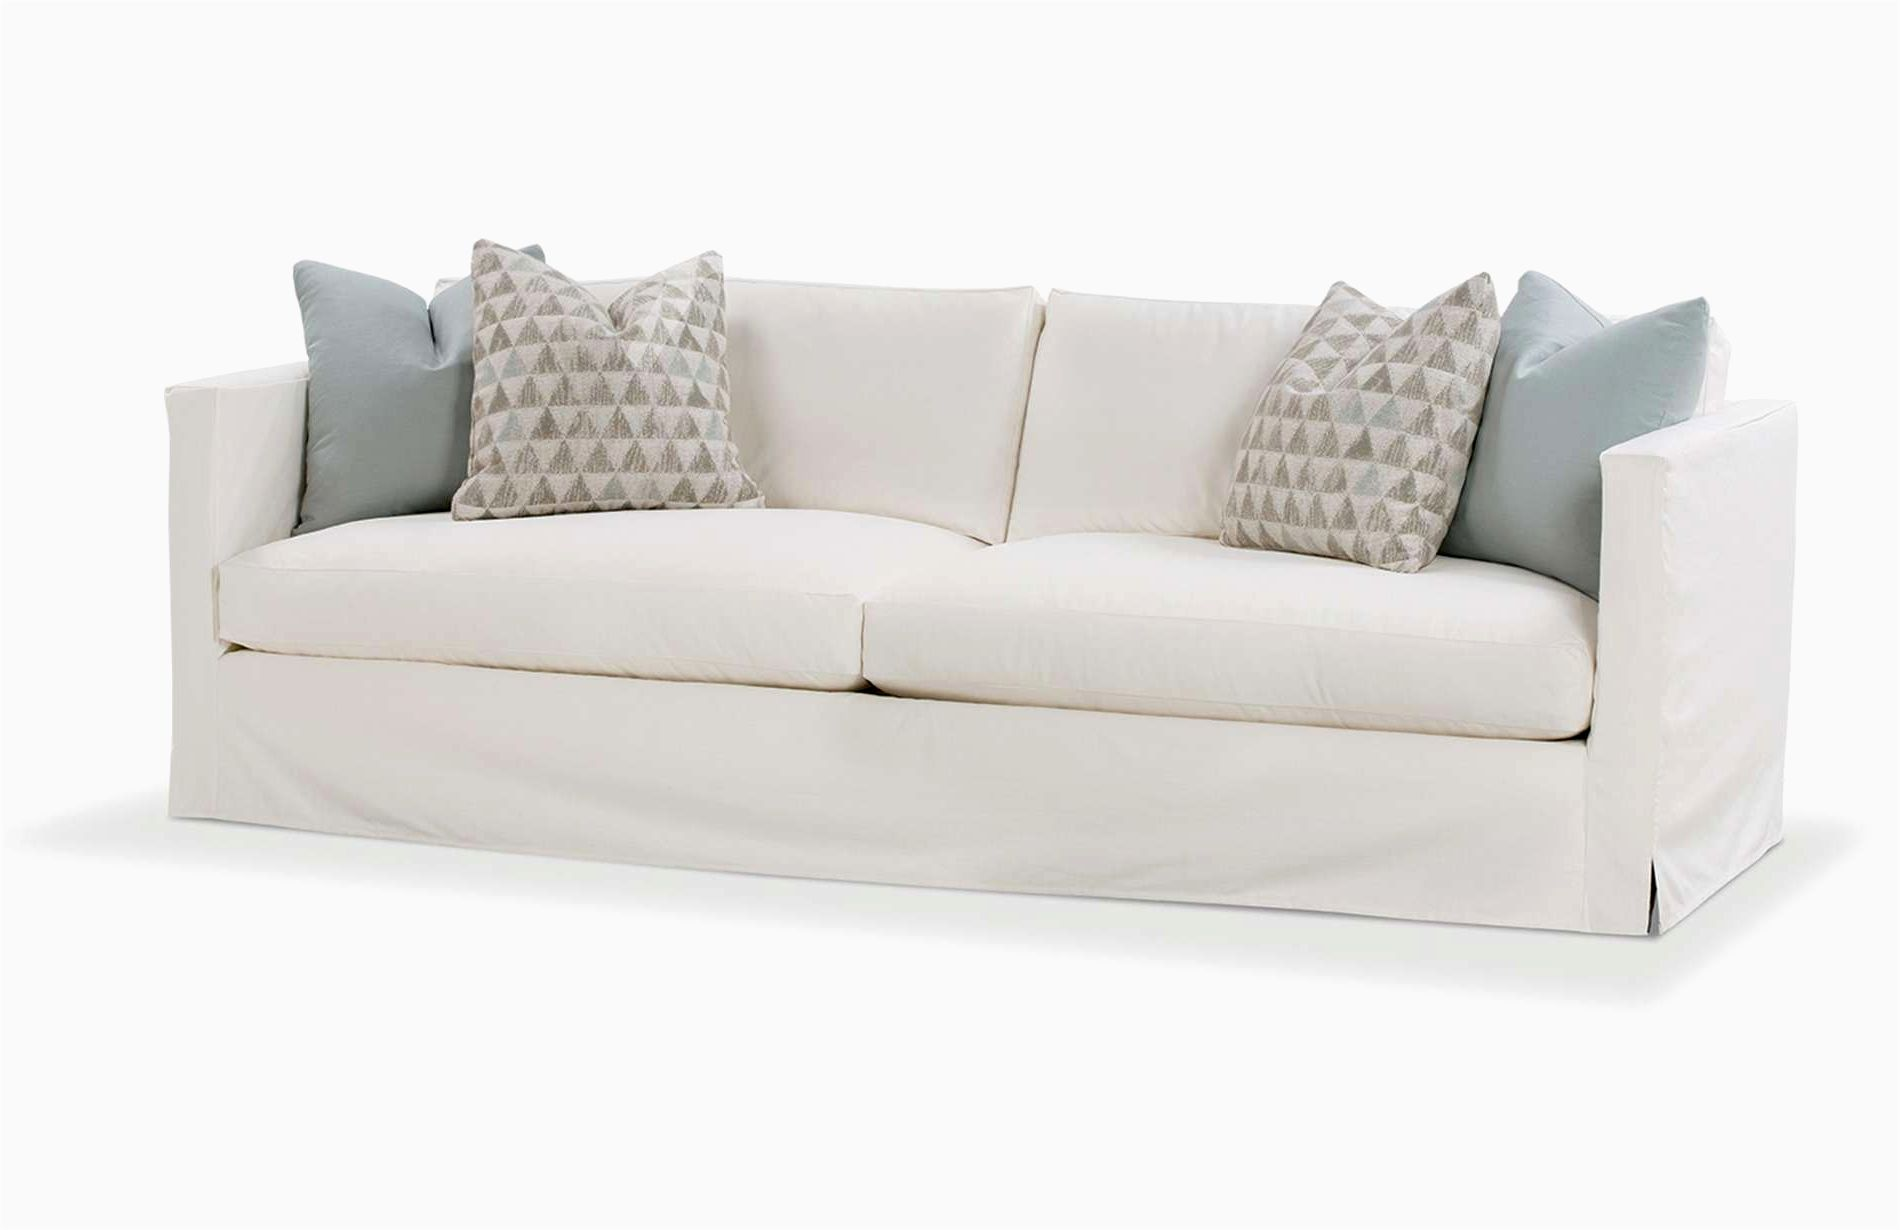 fresh slip covered sofas photograph-Modern Slip Covered sofas Concept